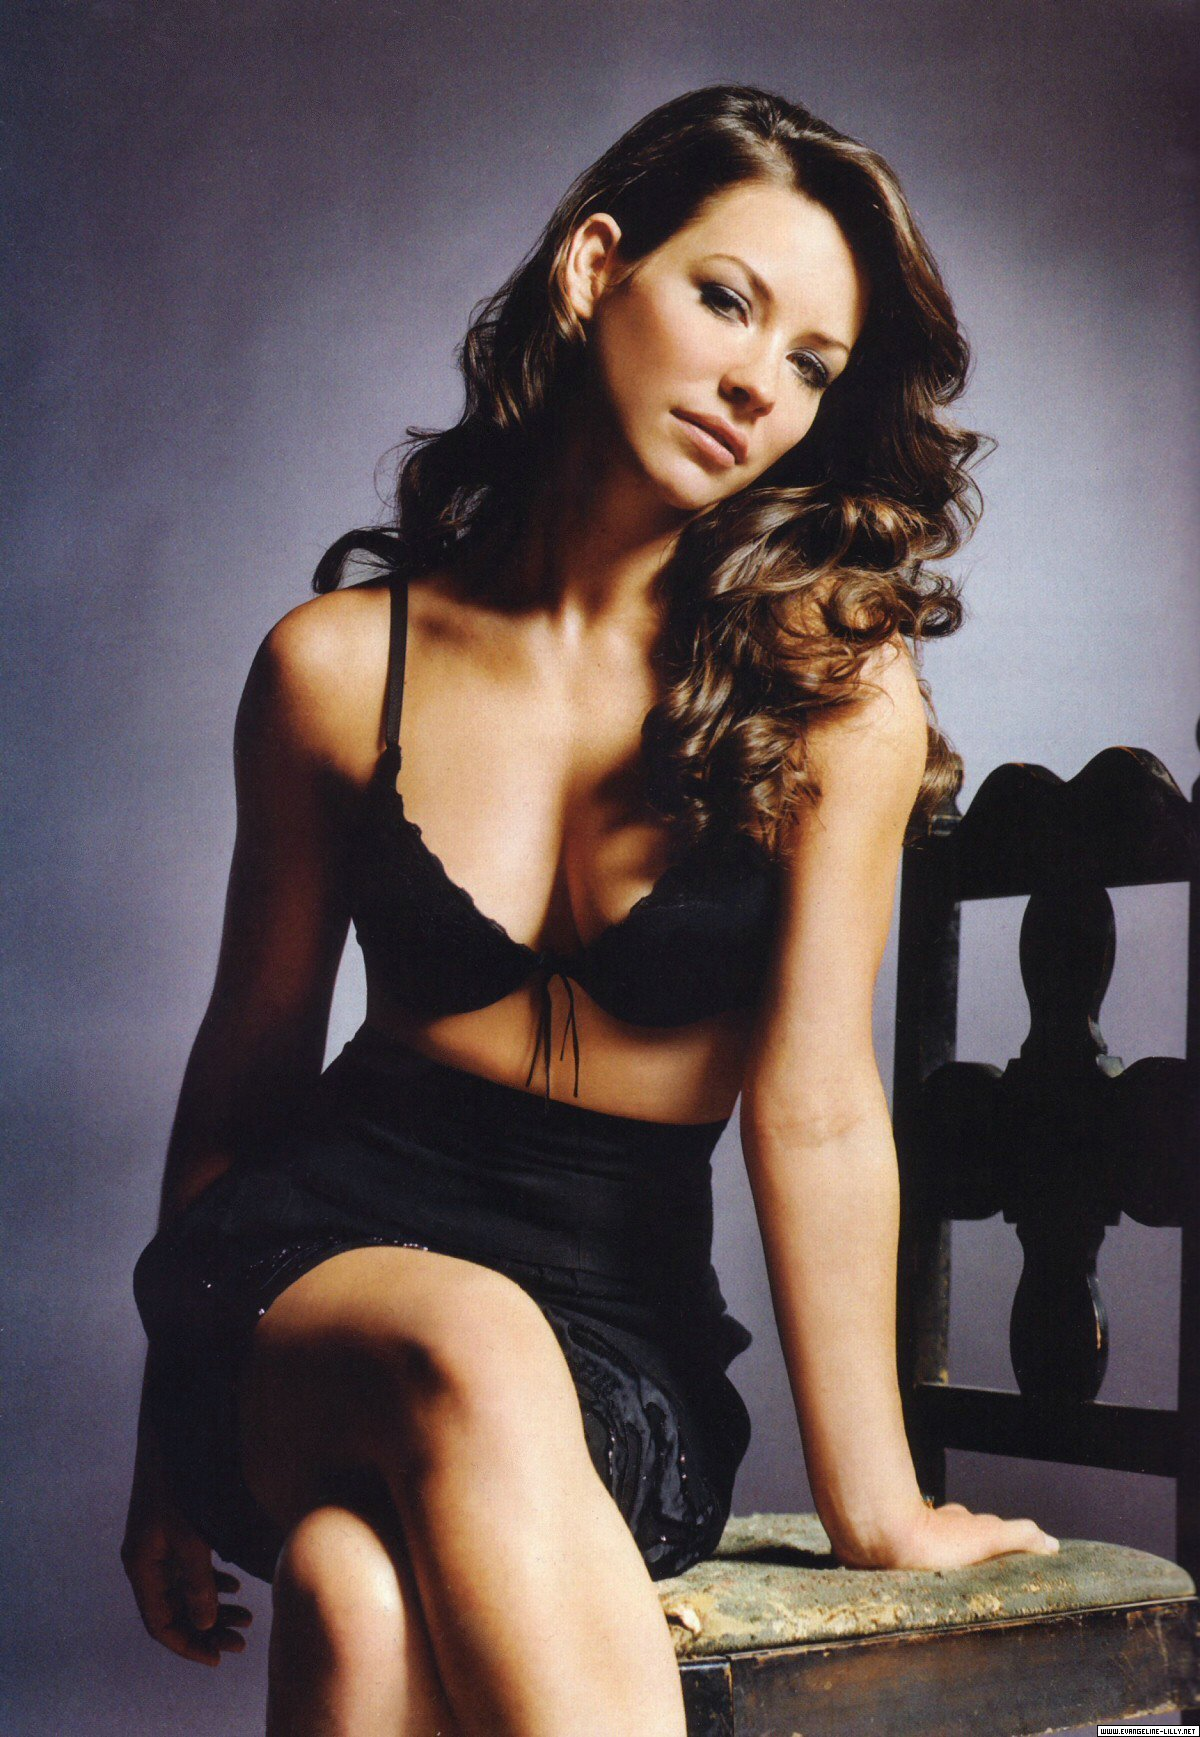 http://images2.fanpop.com/image/photos/11000000/Evie-Esquire-magazine-evangeline-lilly-11023080-1200-1737.jpg